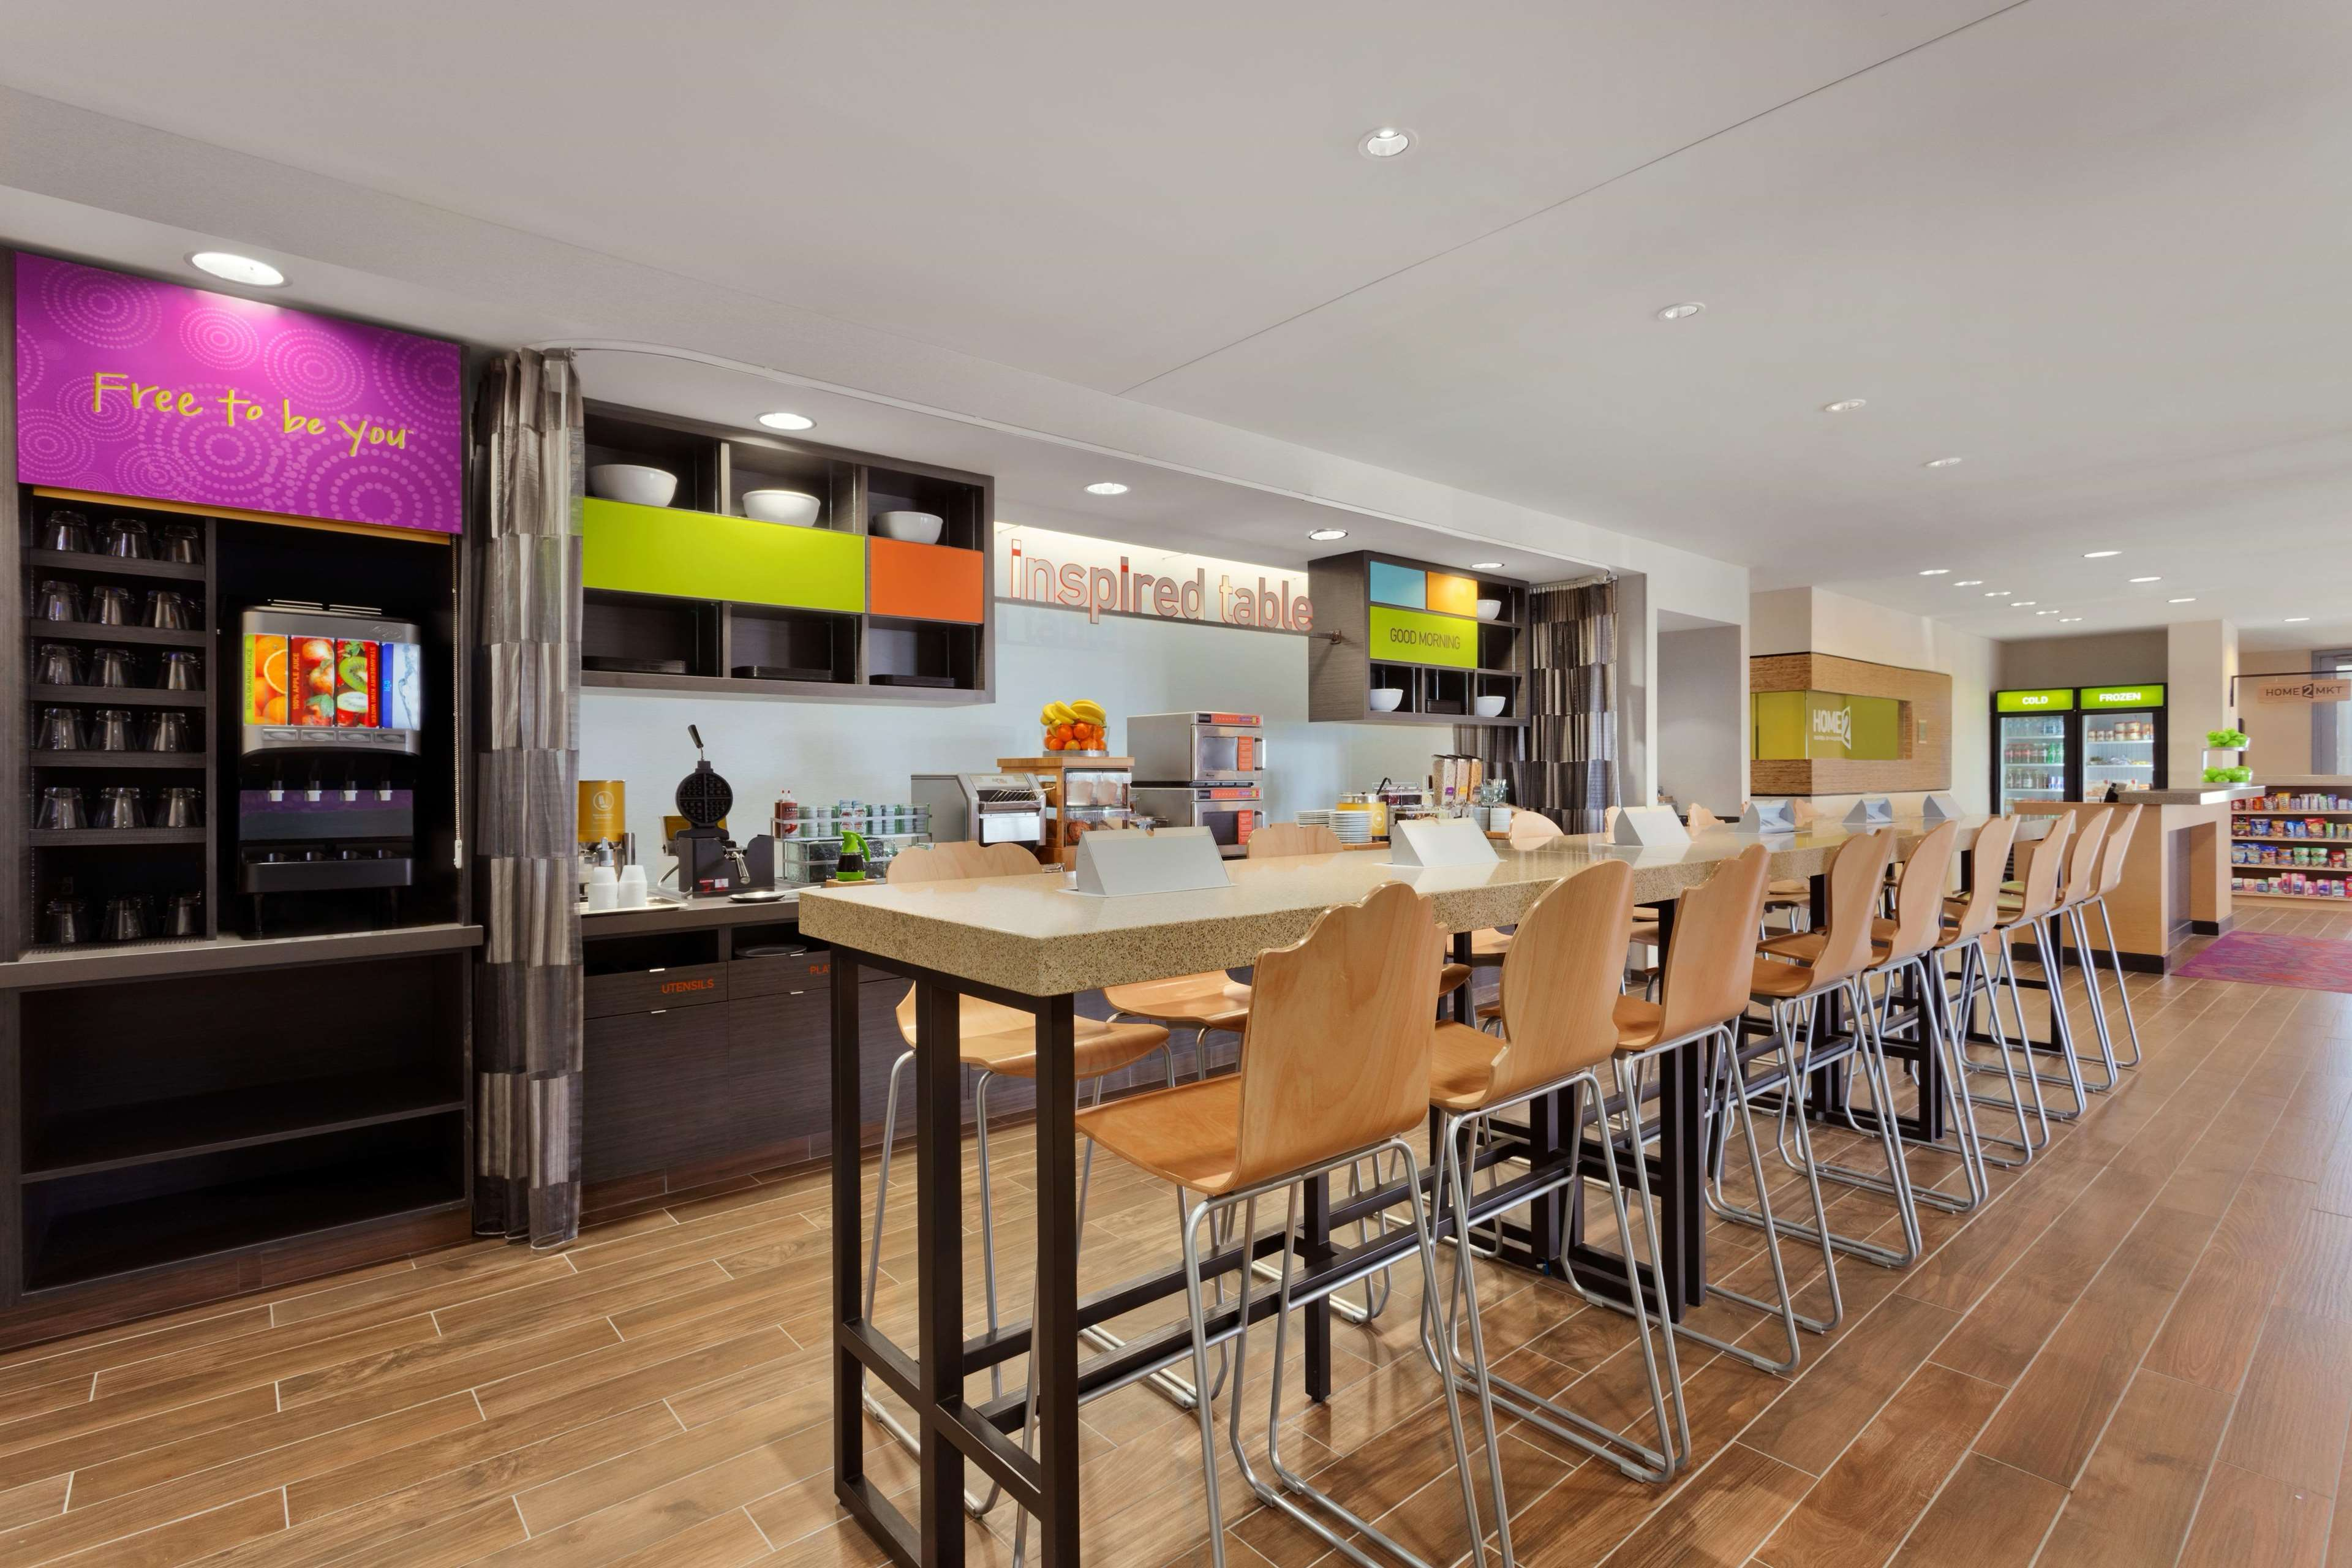 Home2 Suites by Hilton Baltimore/Aberdeen, MD